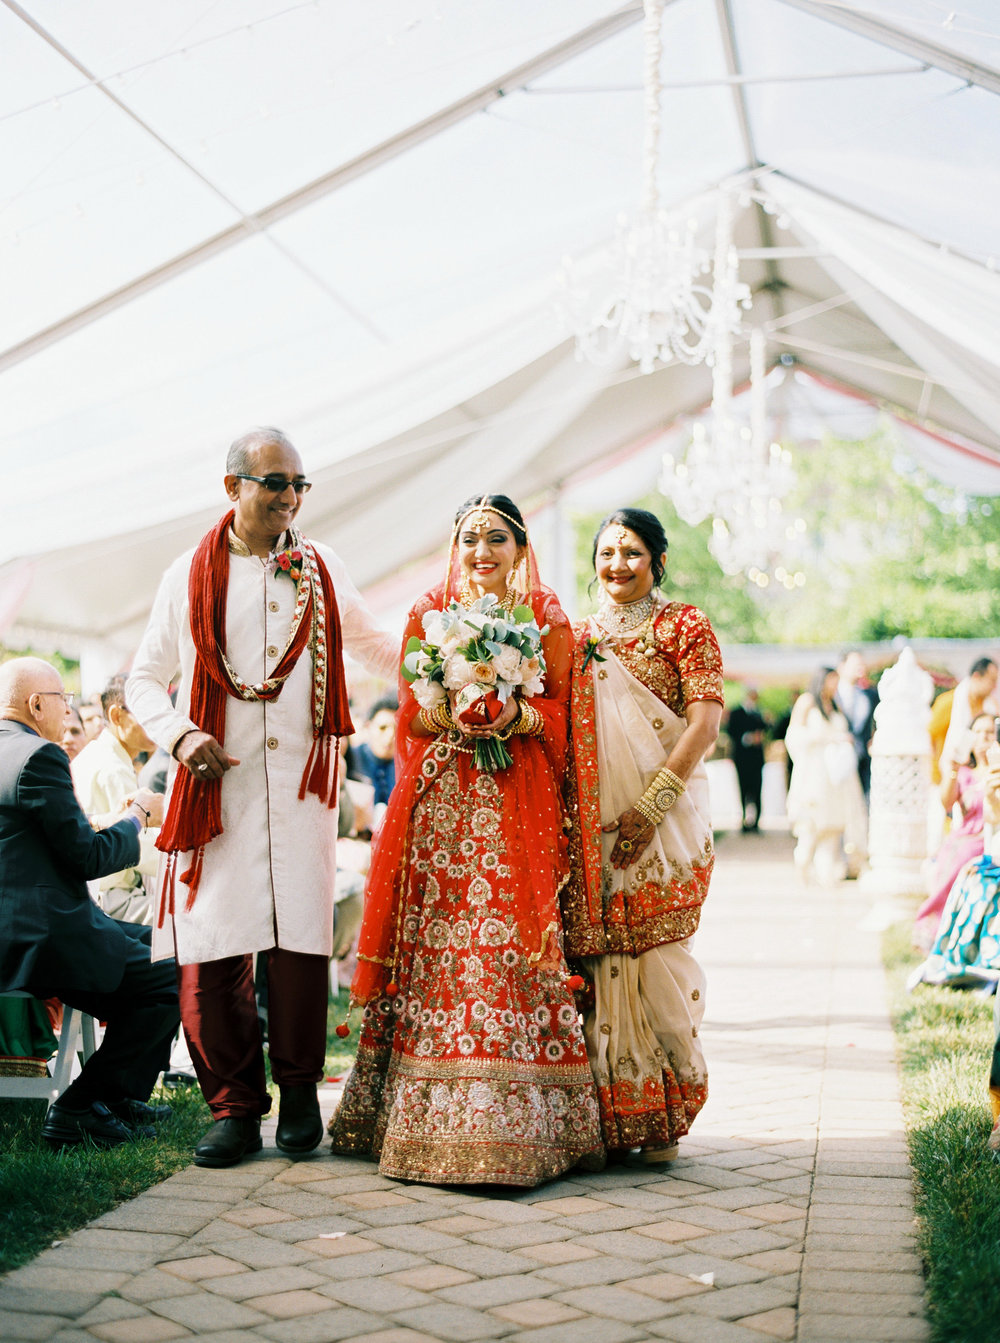 RonakHeenaWedding_Selects-146.jpg